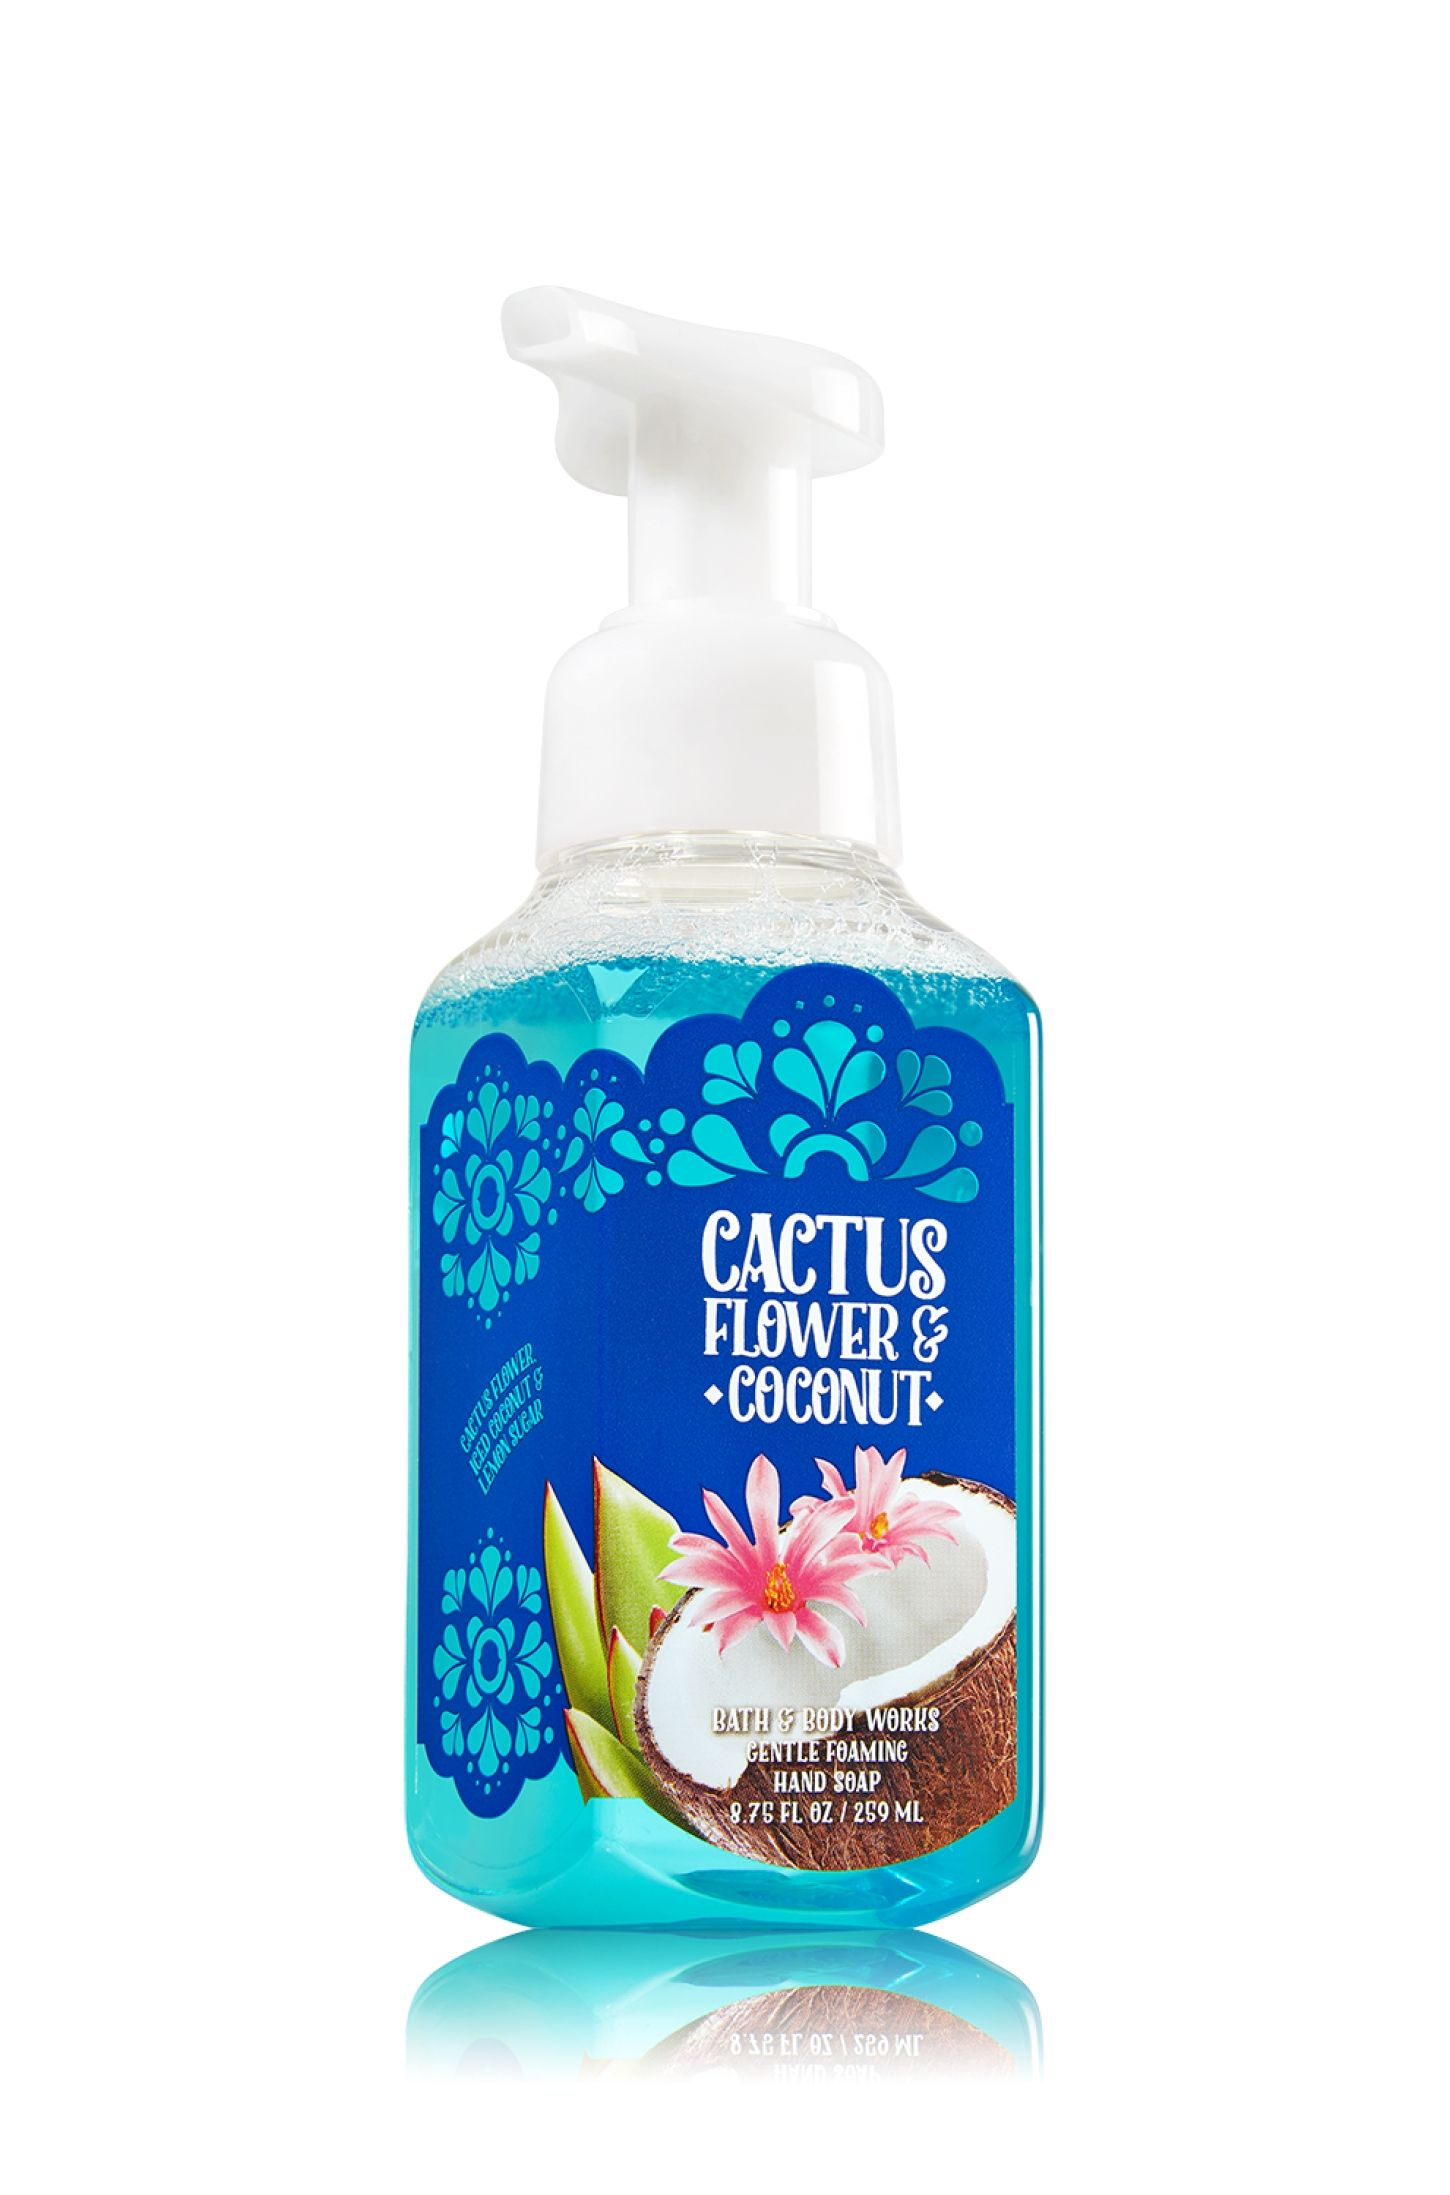 Cactus Flower Coconut Gentle Foaming Hand Soap Soap Sanitizer